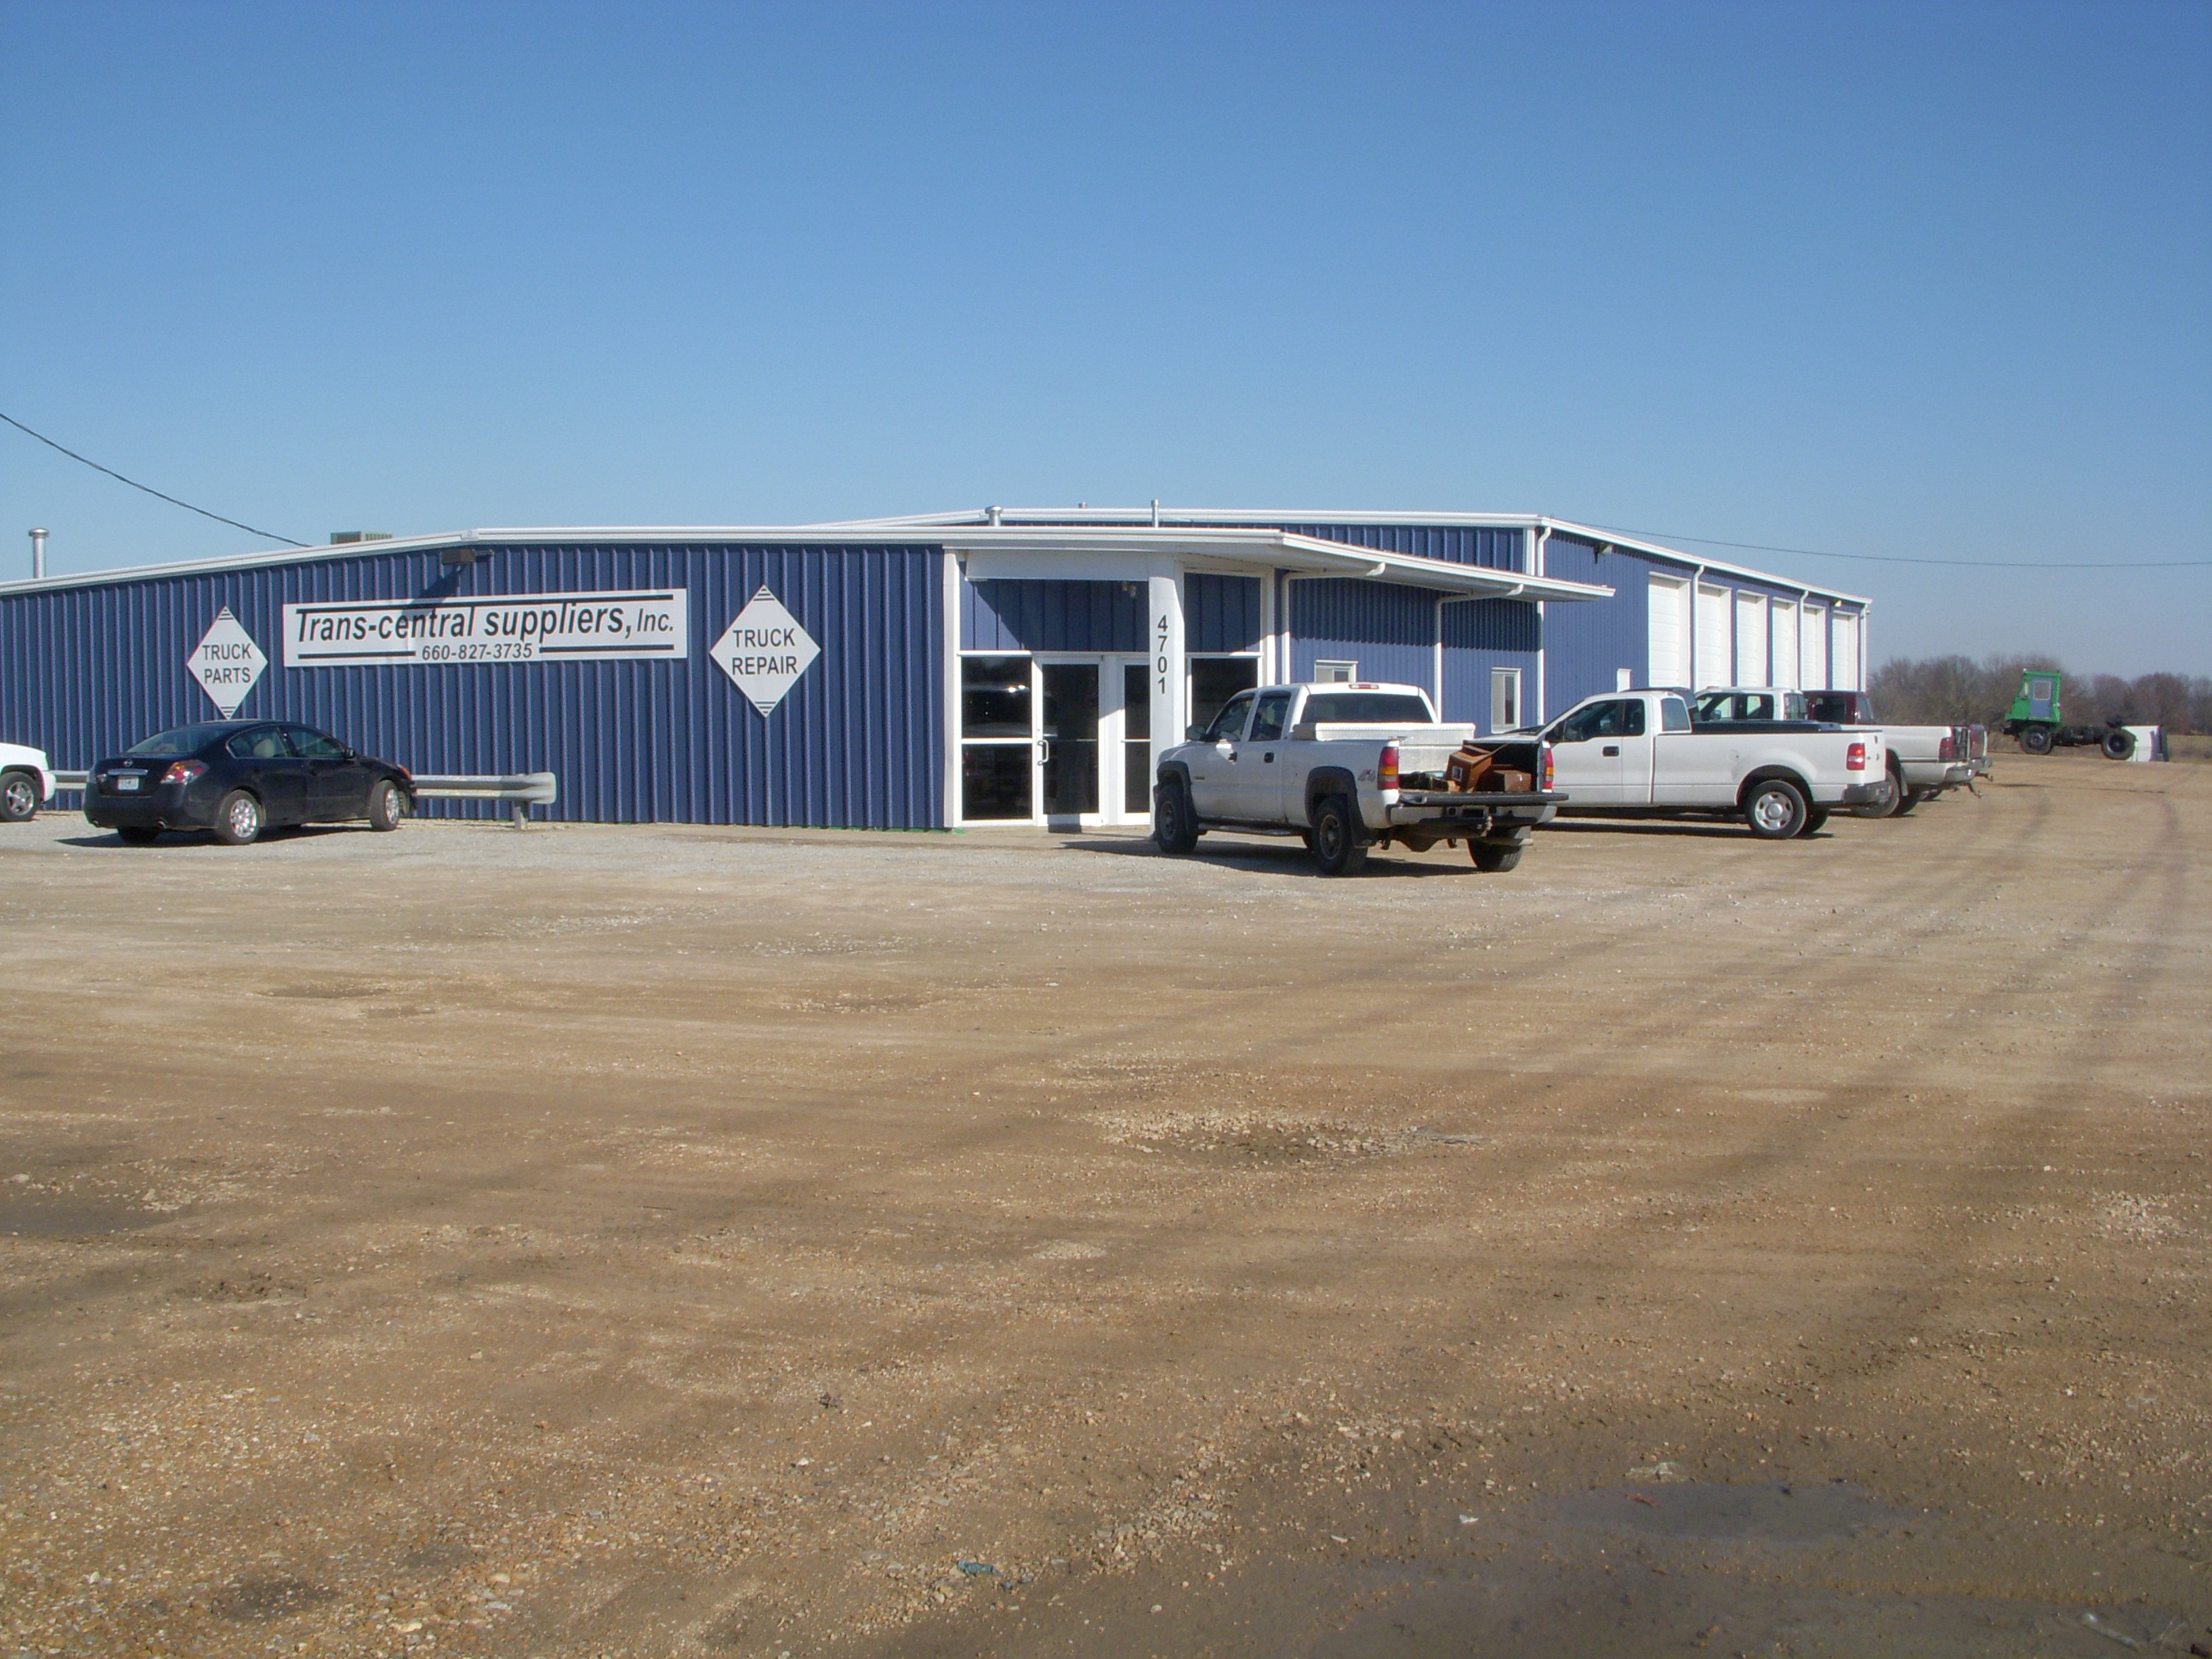 Trans Central Suppliers, Inc image 1